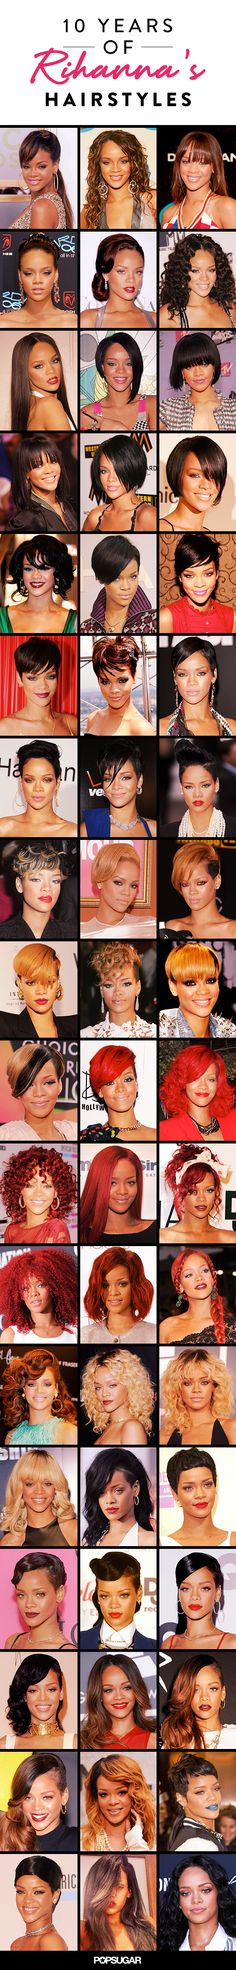 Which of Rihanna's hairstyles is her most daring?